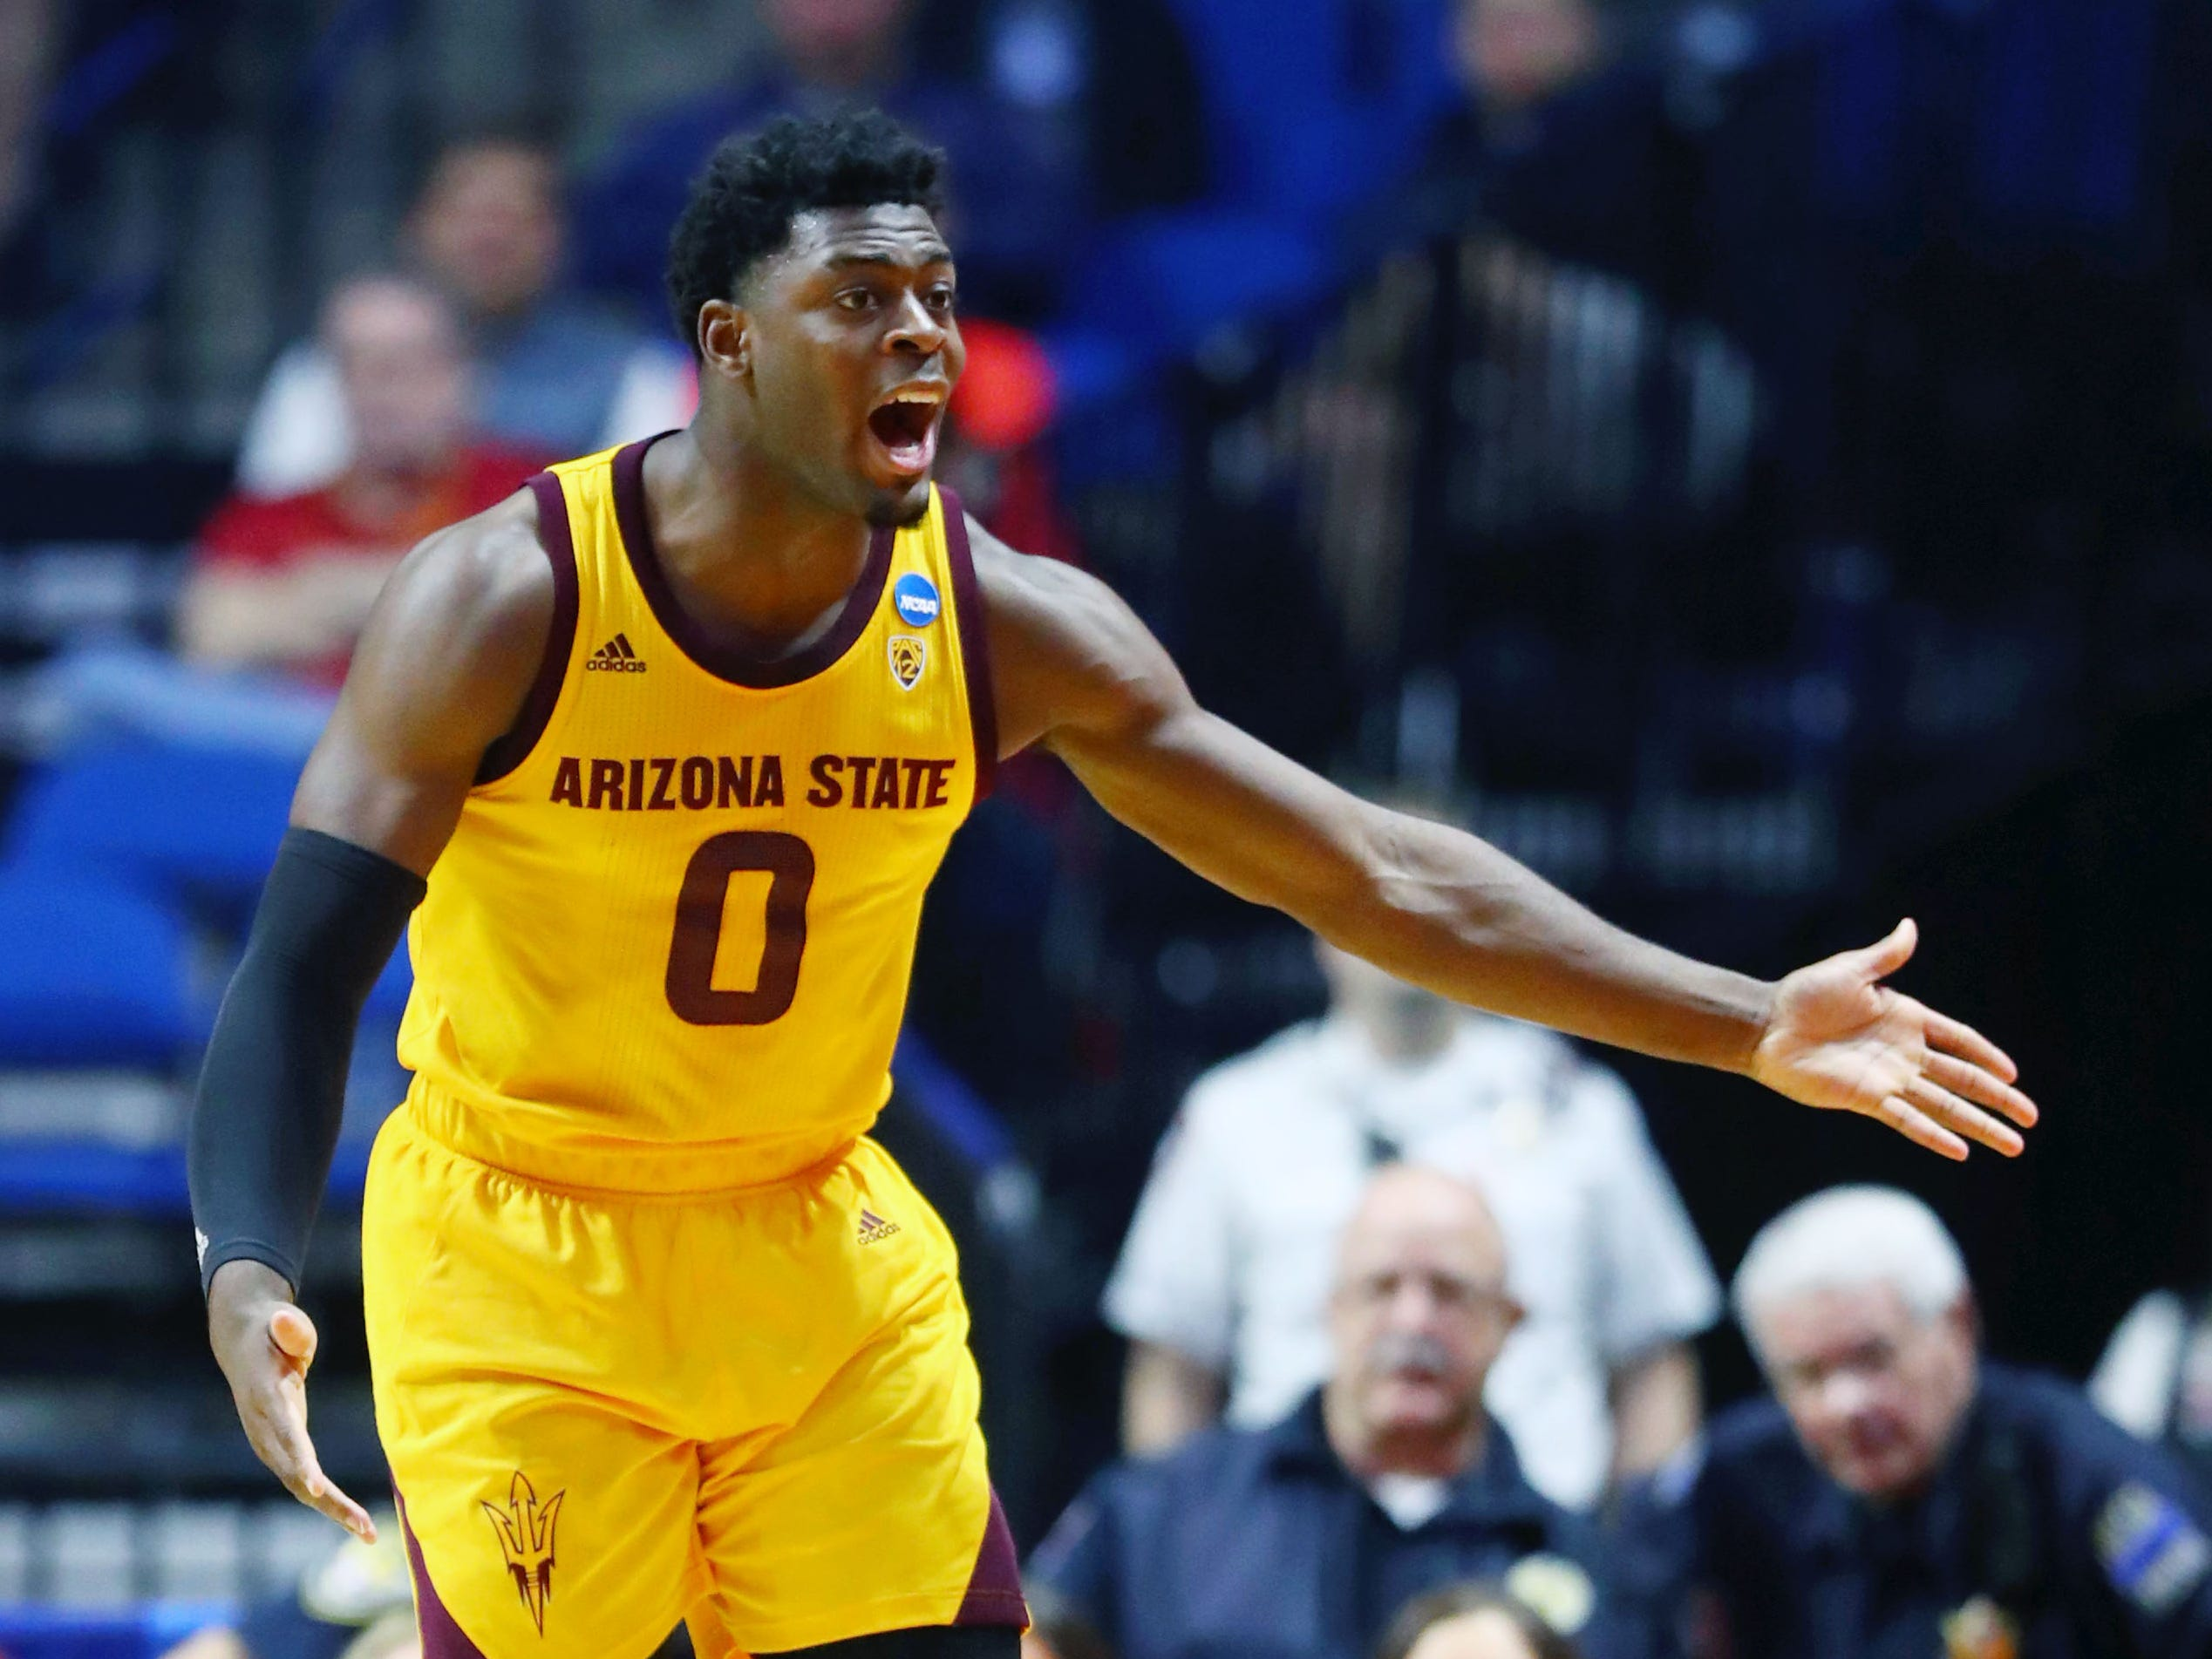 Mar 22, 2019; Tulsa, OK, USA; Arizona State Sun Devils guard Luguentz Dort (0) reacts after a call during the second half of their game against the Buffalo Bulls in the first round of the 2019 NCAA Tournament at BOK Center. Mandatory Credit: Mark J. Rebilas-USA TODAY Sports